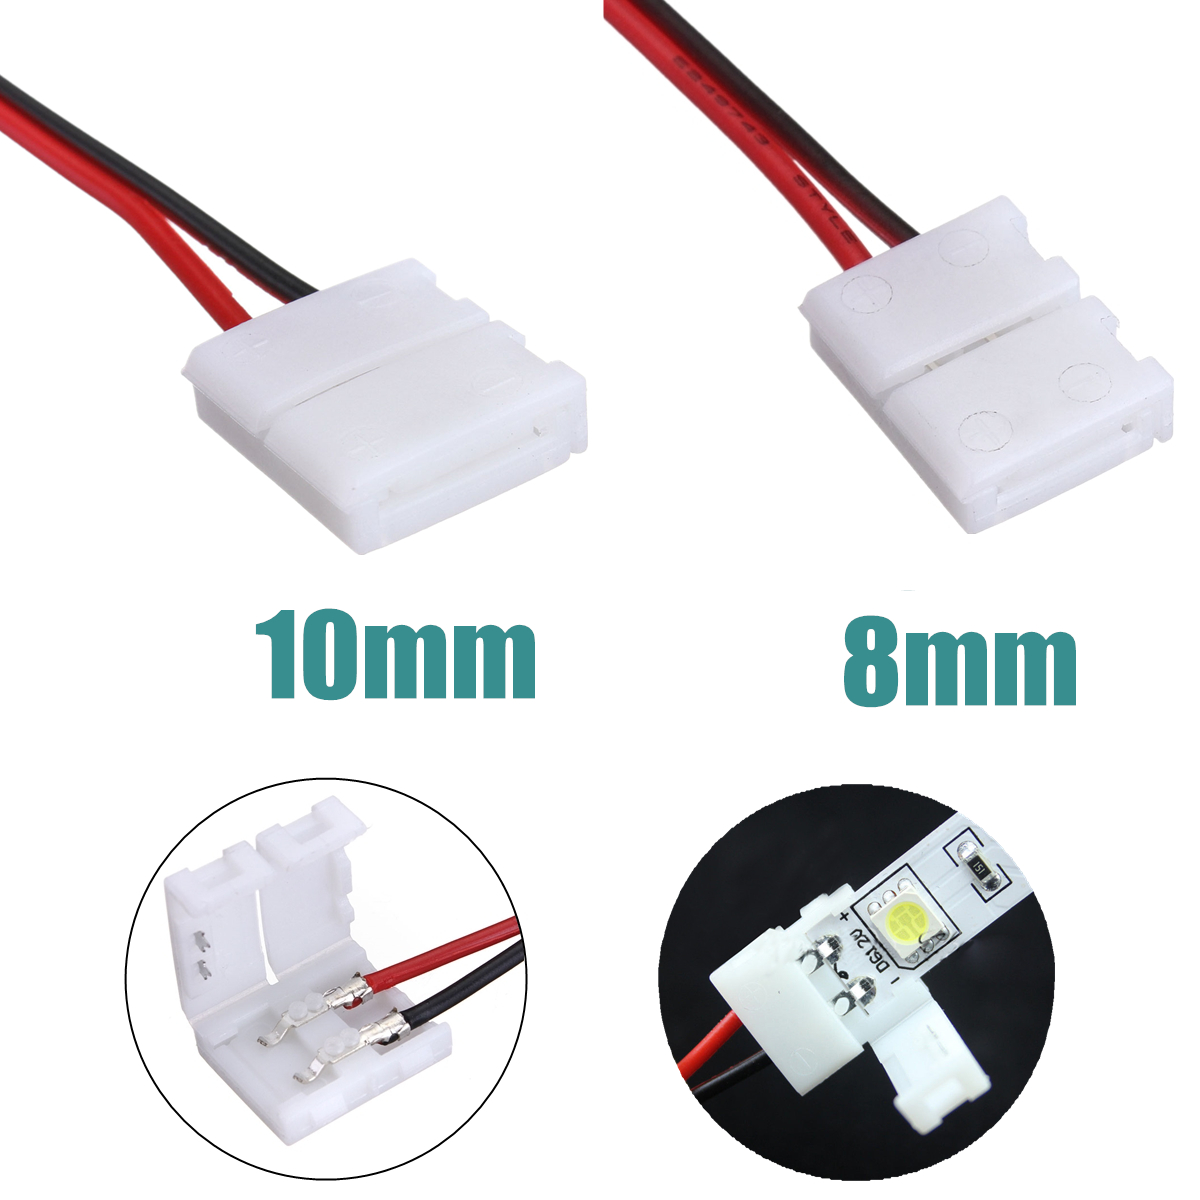 2-Pins Power Connector Adaptor For 3528/5050 Led Strip Wire With PCB zinuo 4pin channels led rgb cable wire 5m 10m 15m 20m 30m for 5050 3528 strip light extension extend wire cord connector